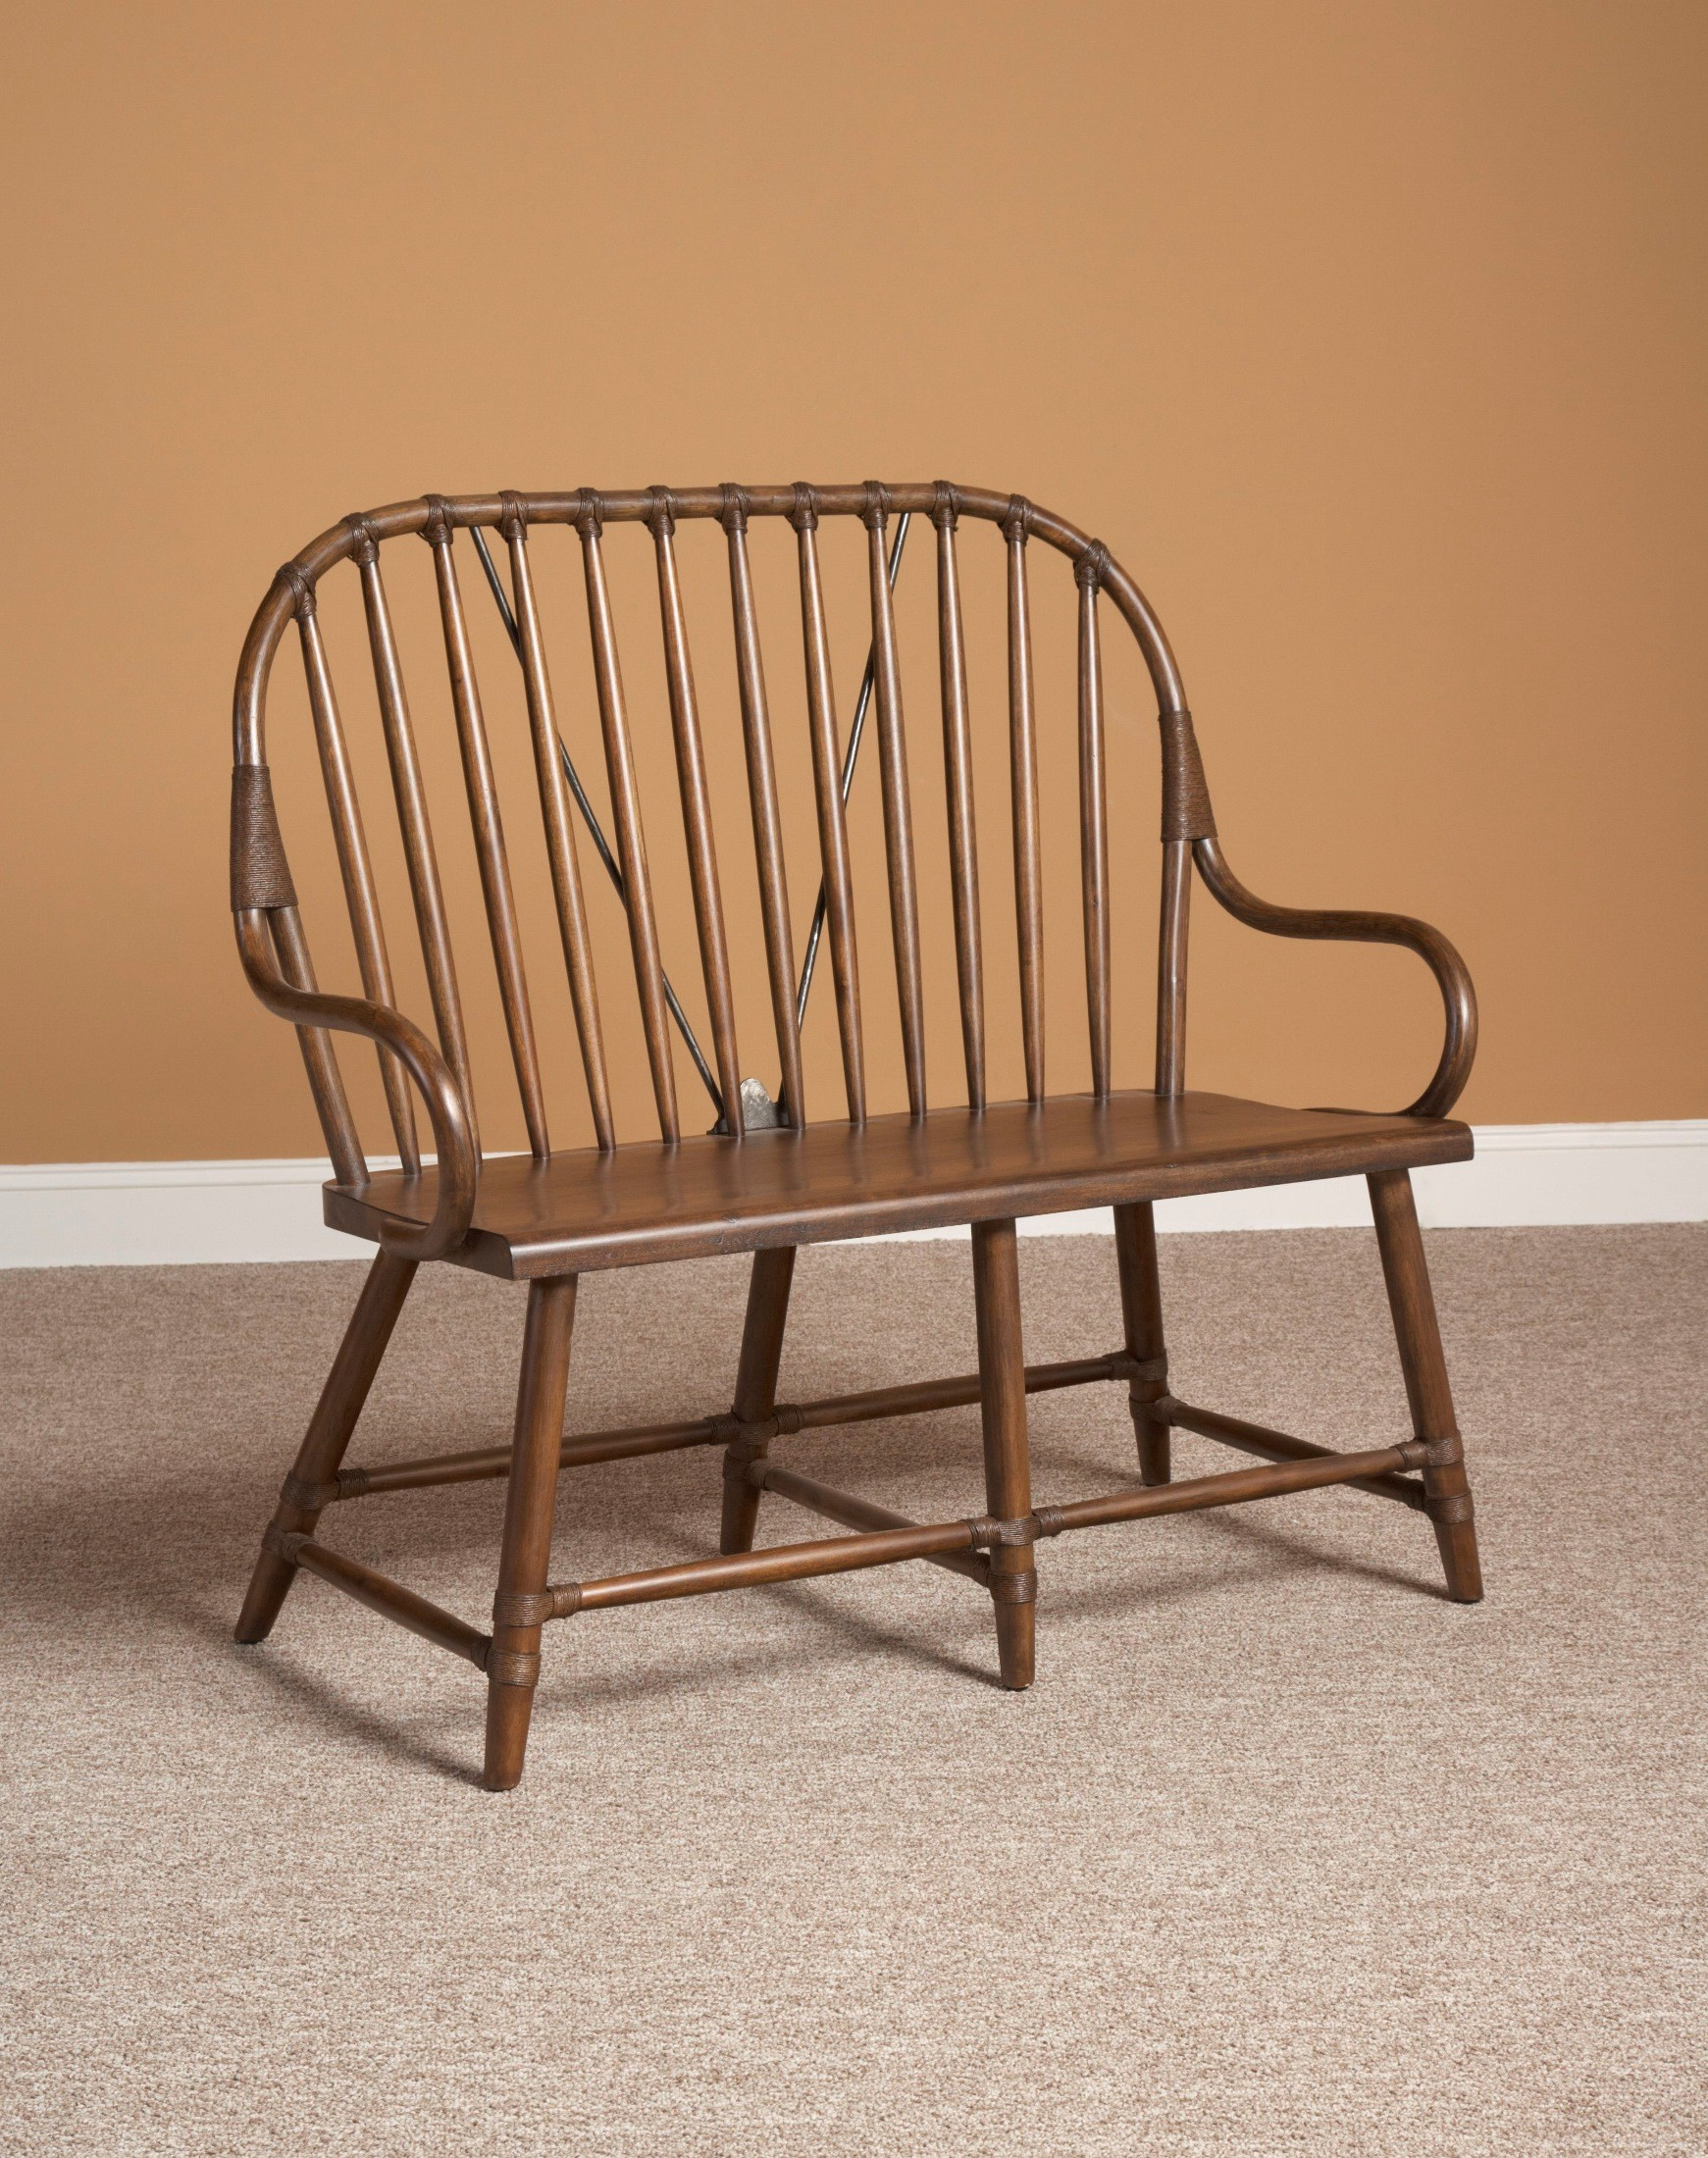 New Bedford Brown Windsor Bench From Largo D682 49b Coleman Furniture